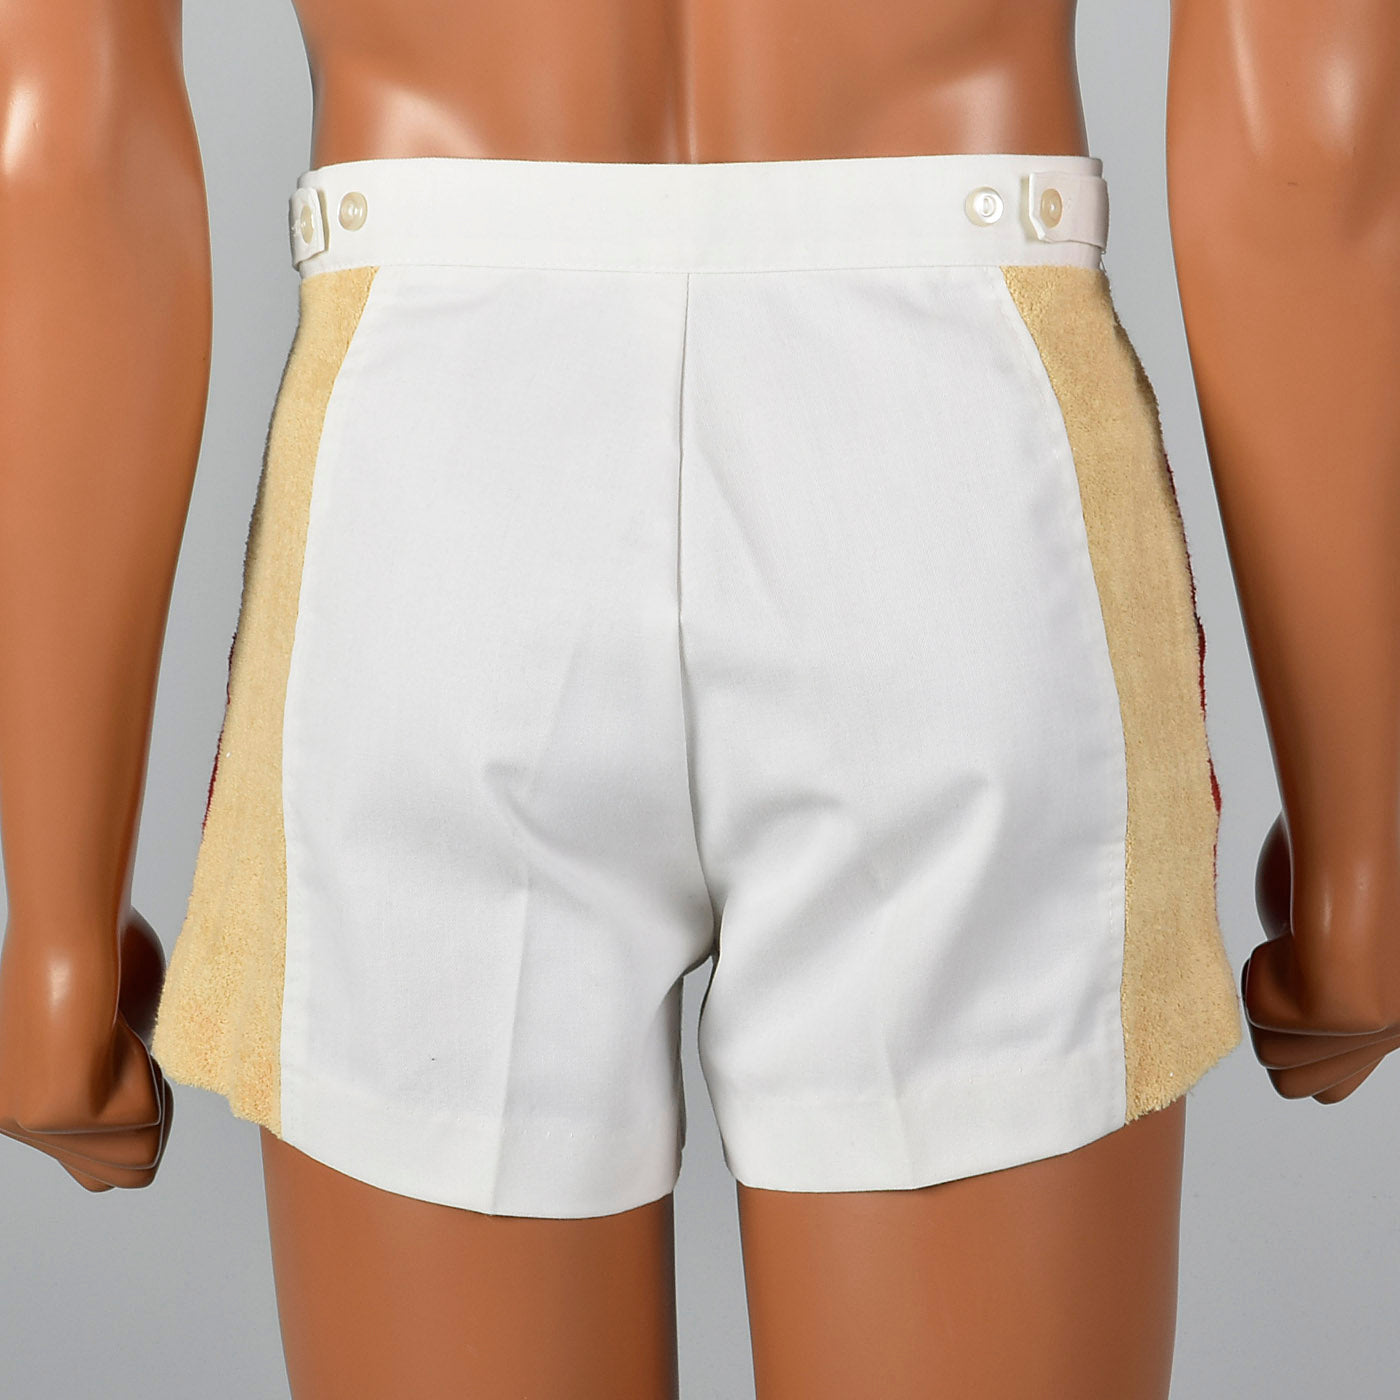 1970s Mens Jockey Shorts with  Terry Cloth Panels